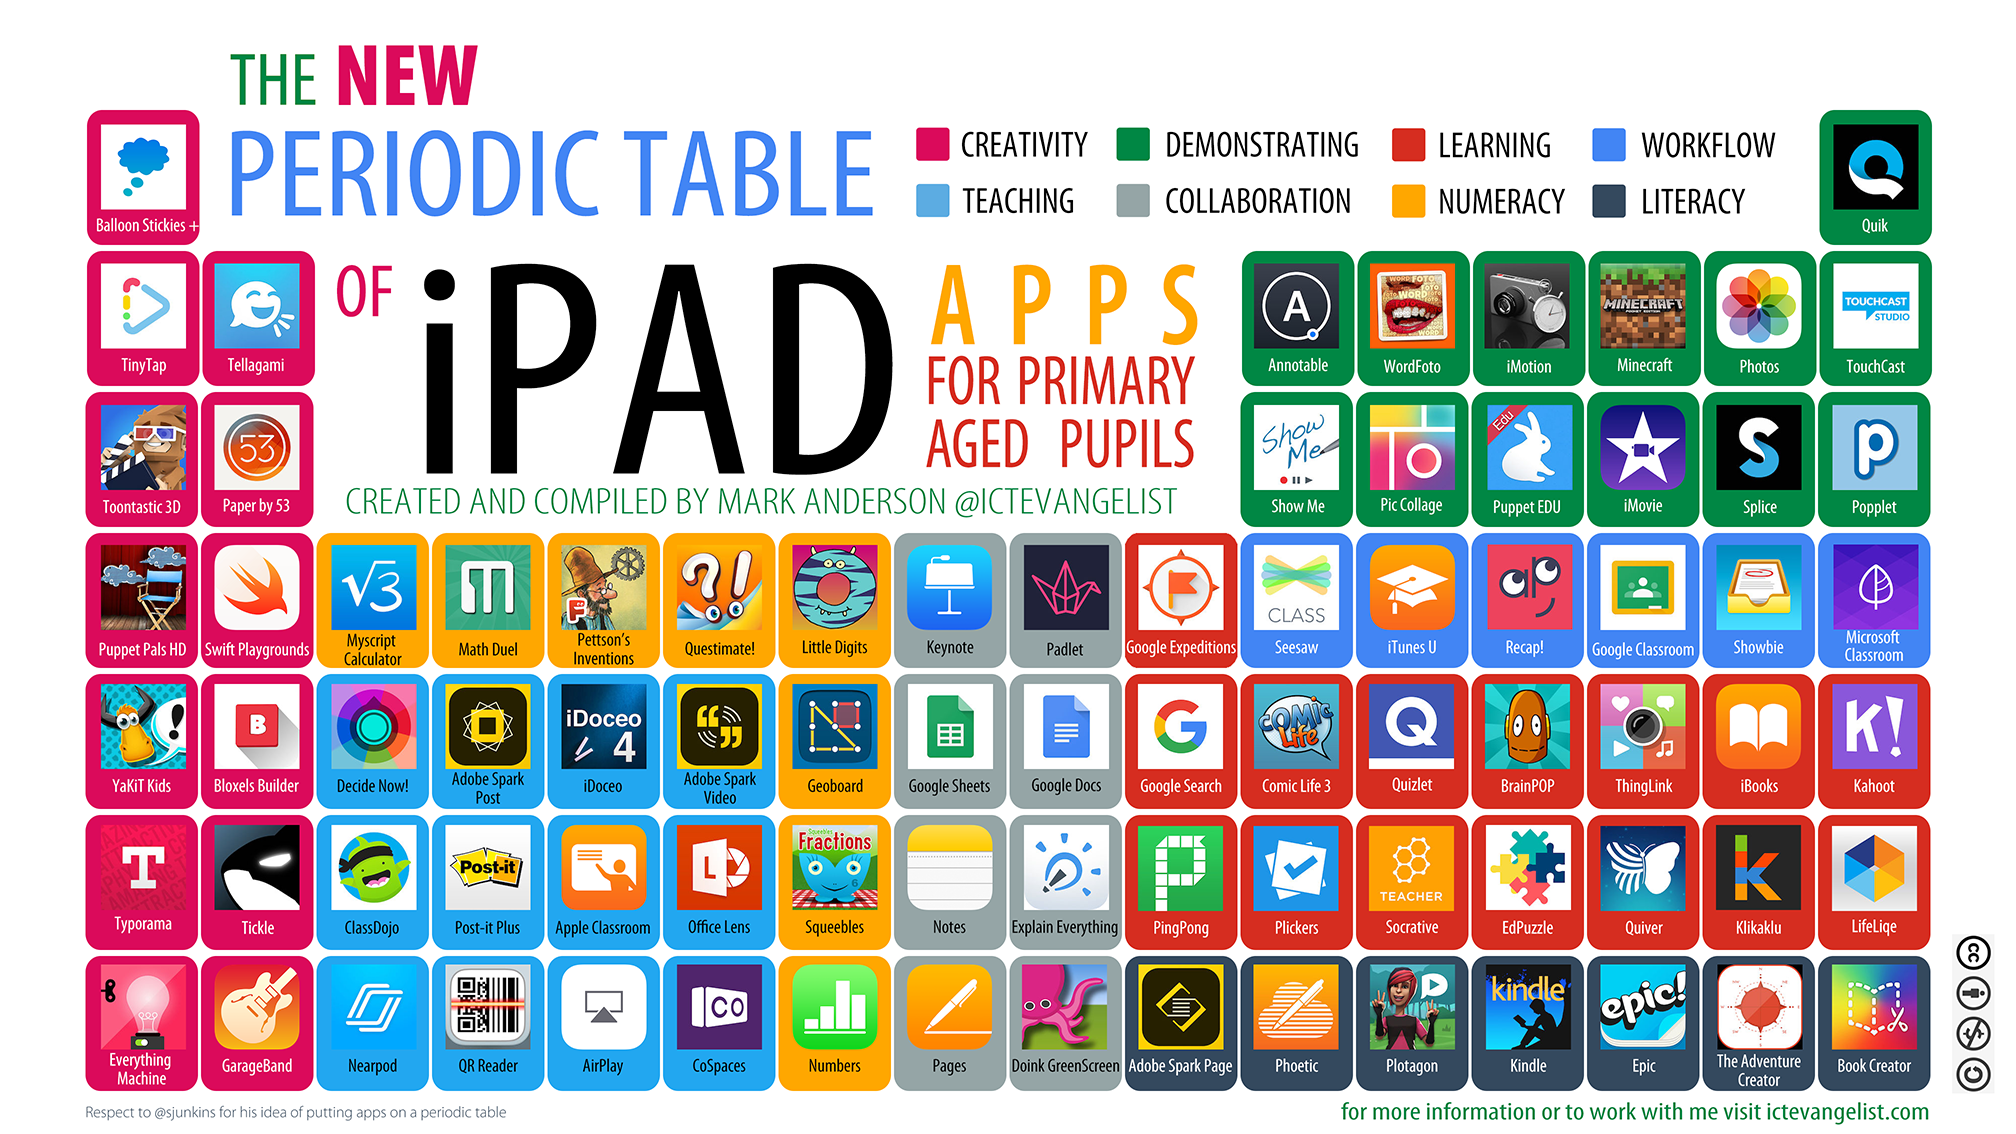 The New Periodic Table Of Ipad Apps For Primary Aged Pupils